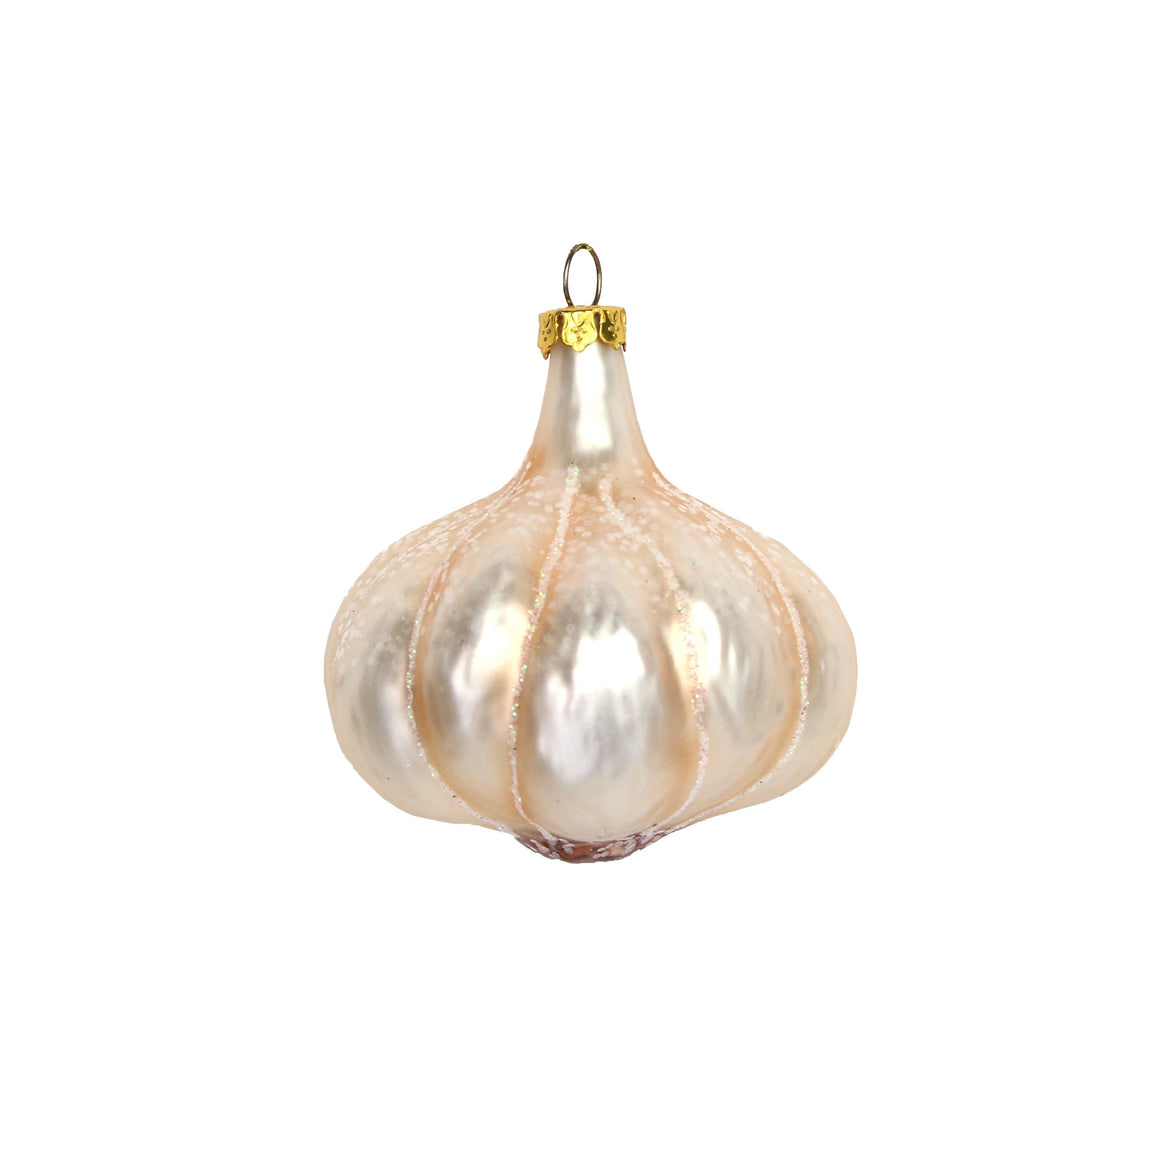 Garlic Bulb Glass Decoration